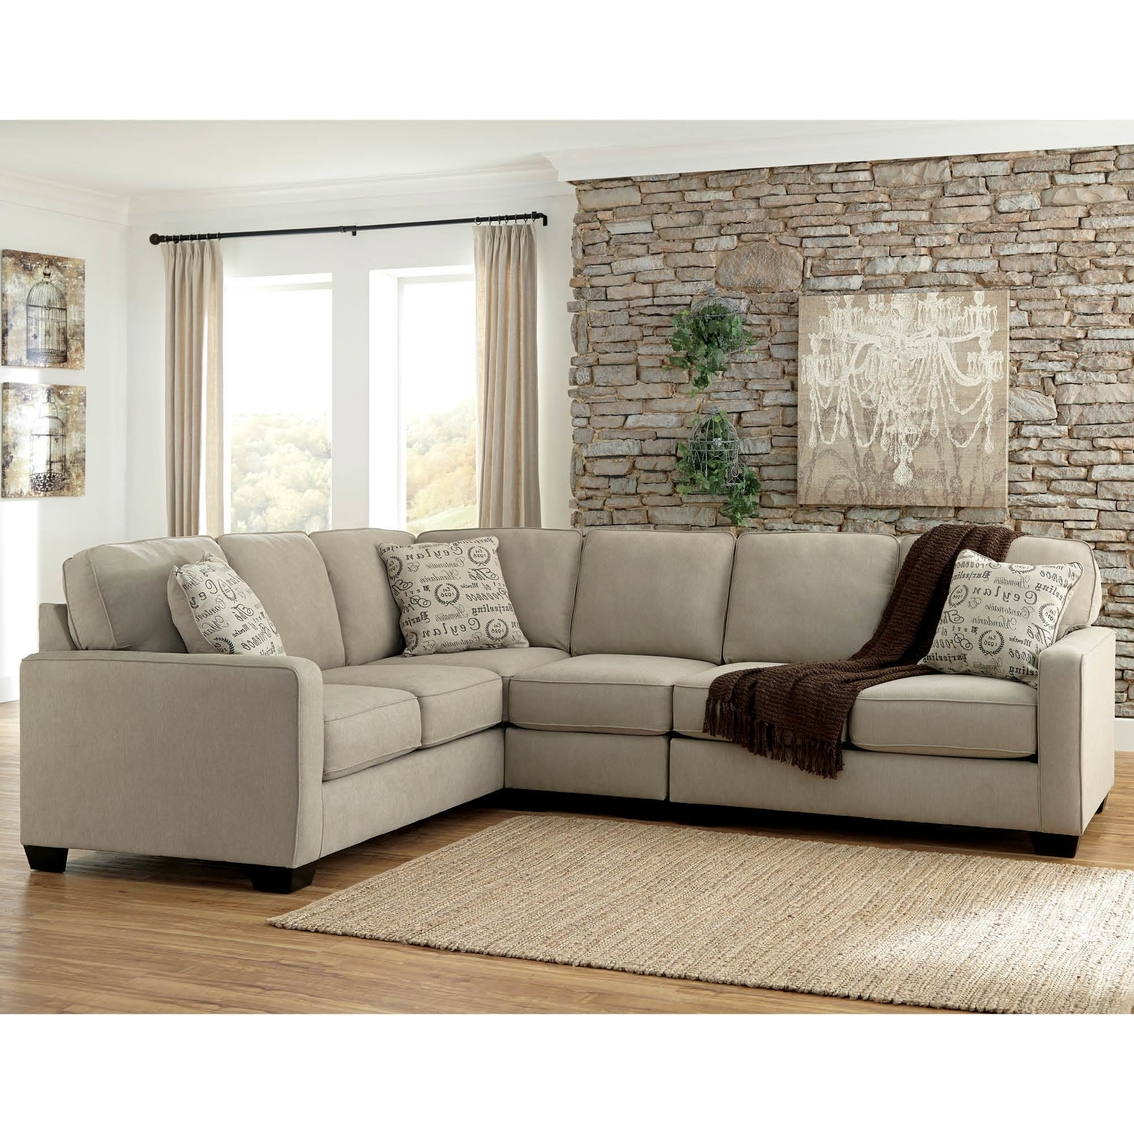 Sectional Raf Loveseat Chair Laf Sofa